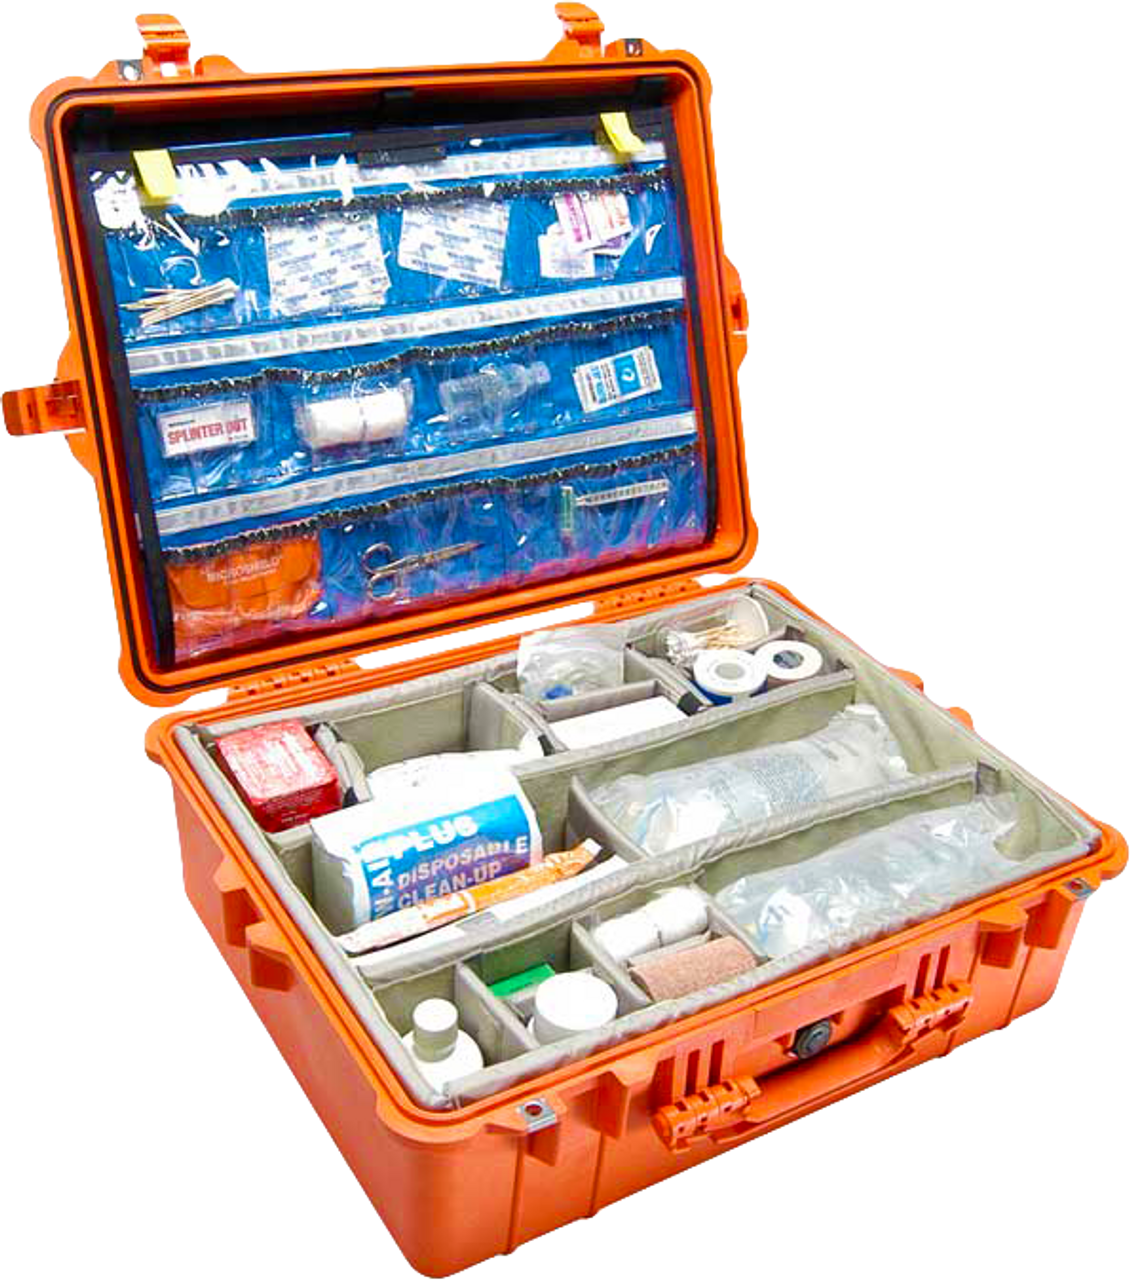 Pelican 1600EMS Case with Organizers & Dividers (supplies shown are for demonstration purposes only and are NOT included)